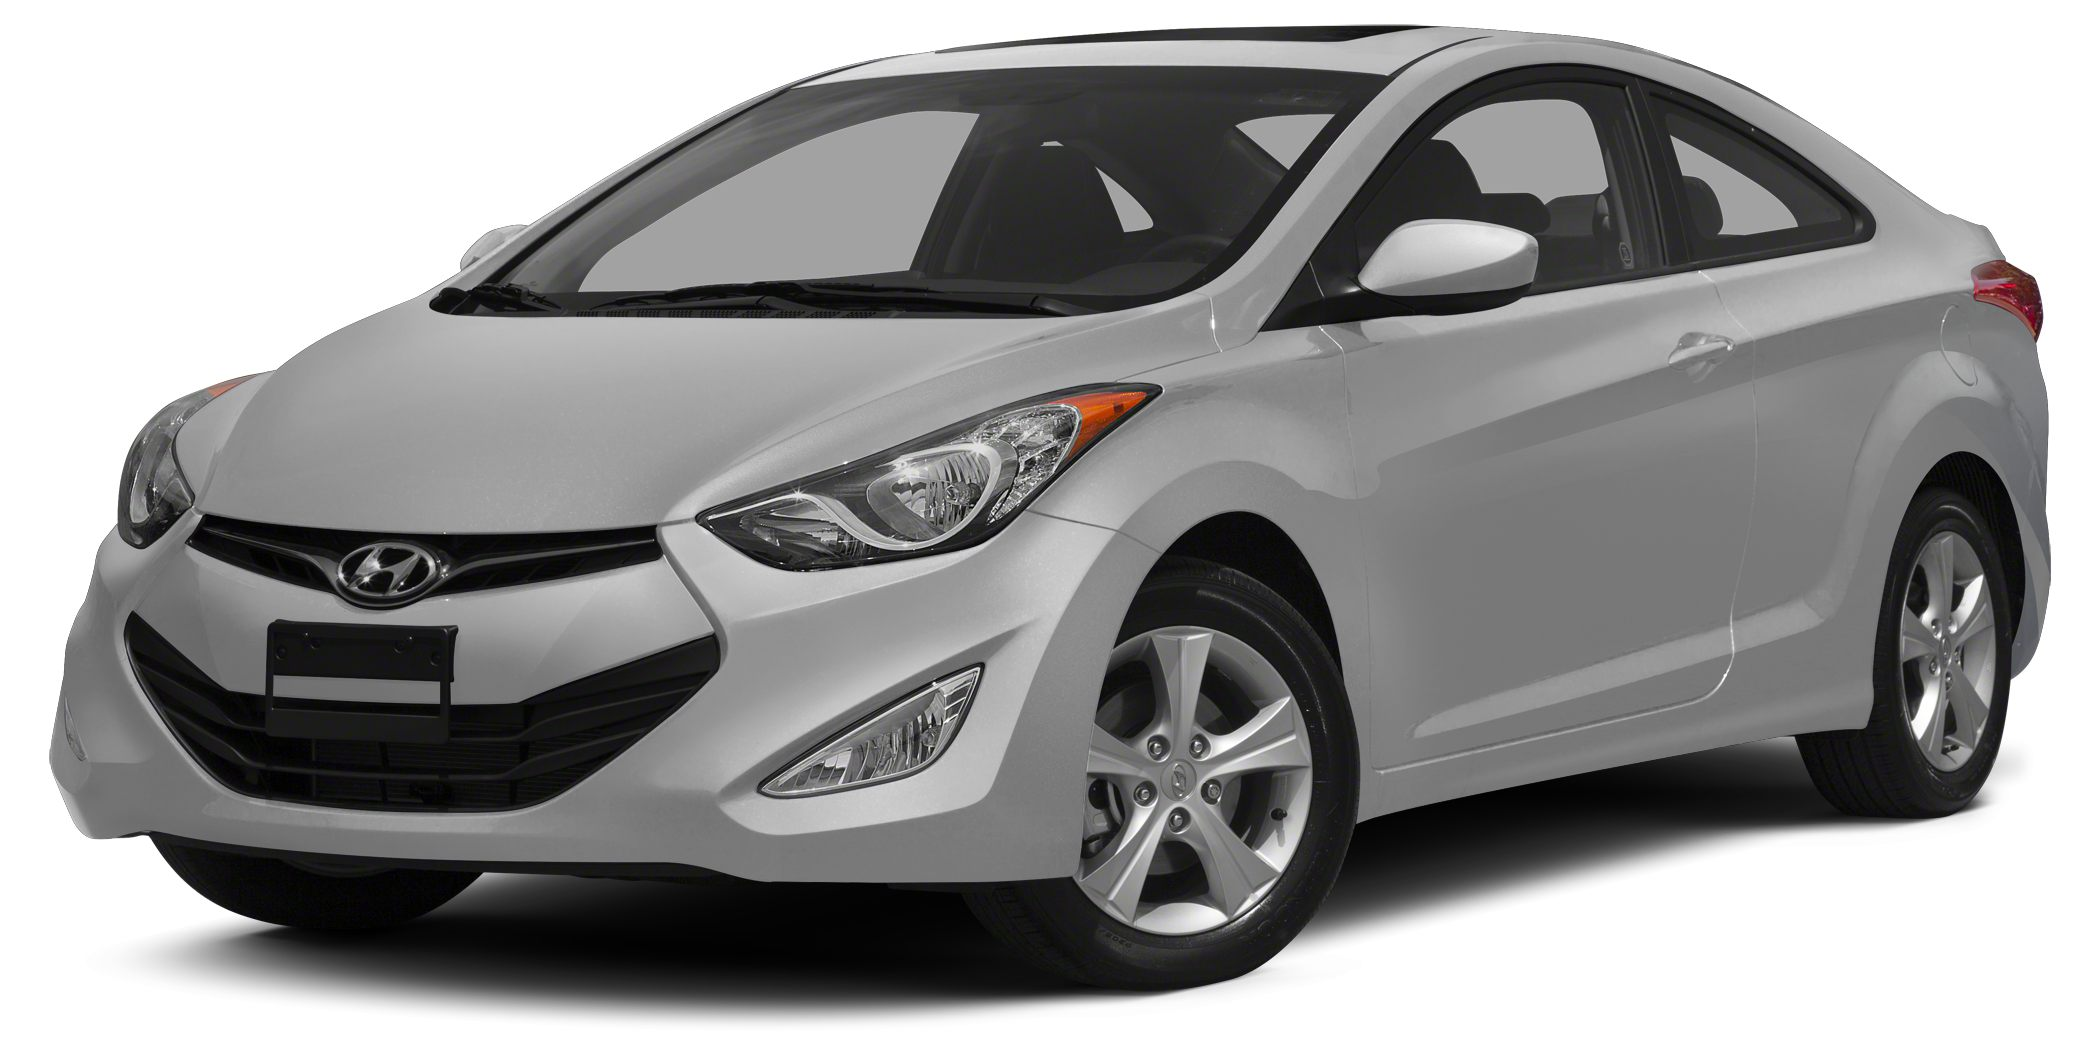 2013 Hyundai Elantra SE Hyundai Certified Take a look at this one owner Elantra SE thats all servi